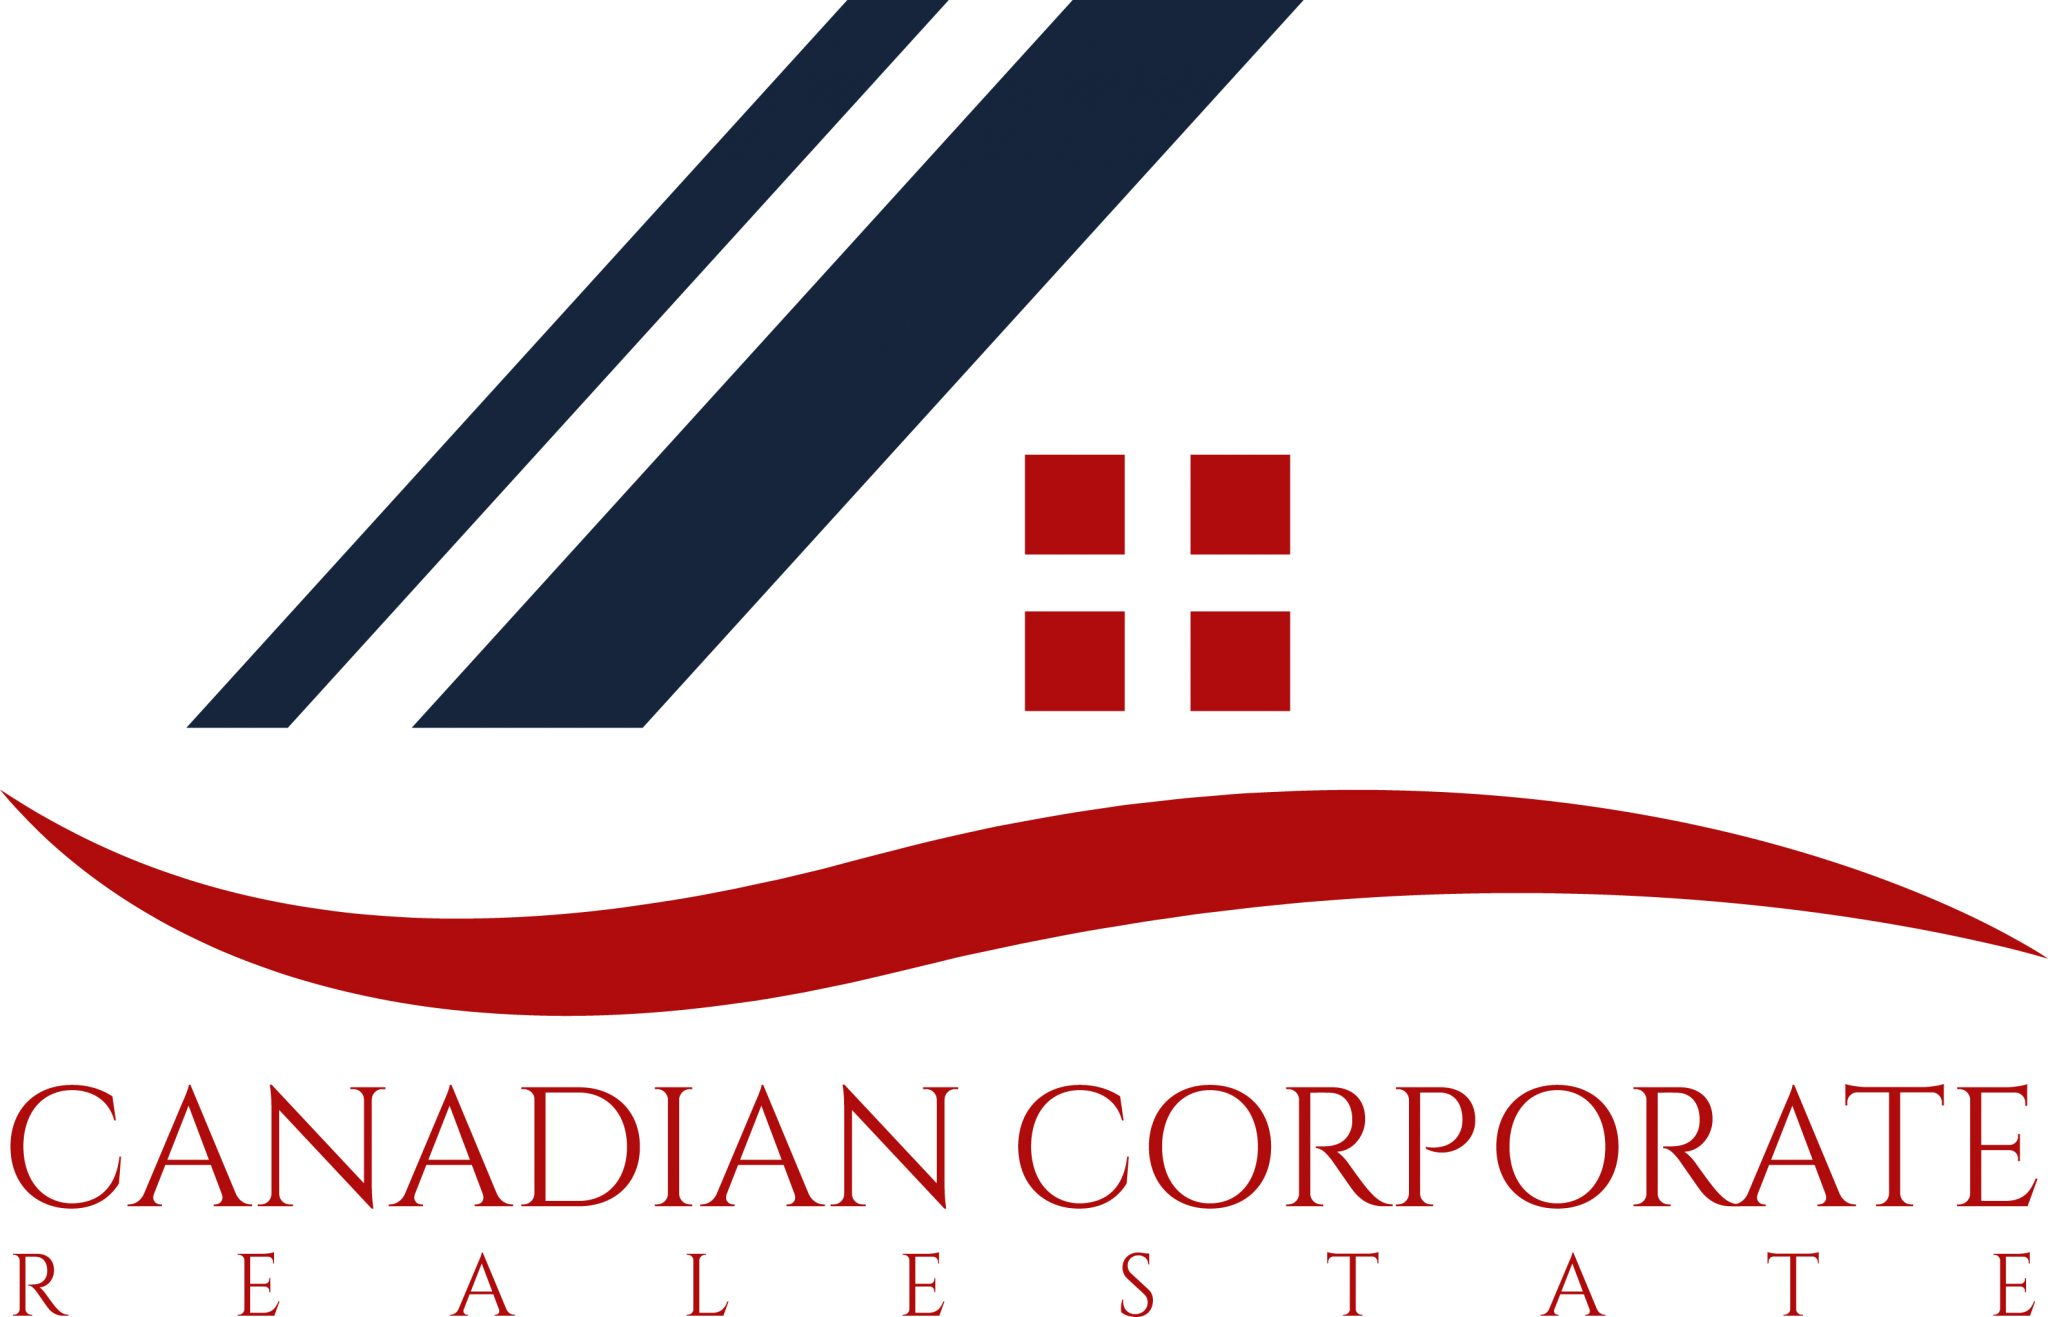 Canadian Corporate Real Estate Services